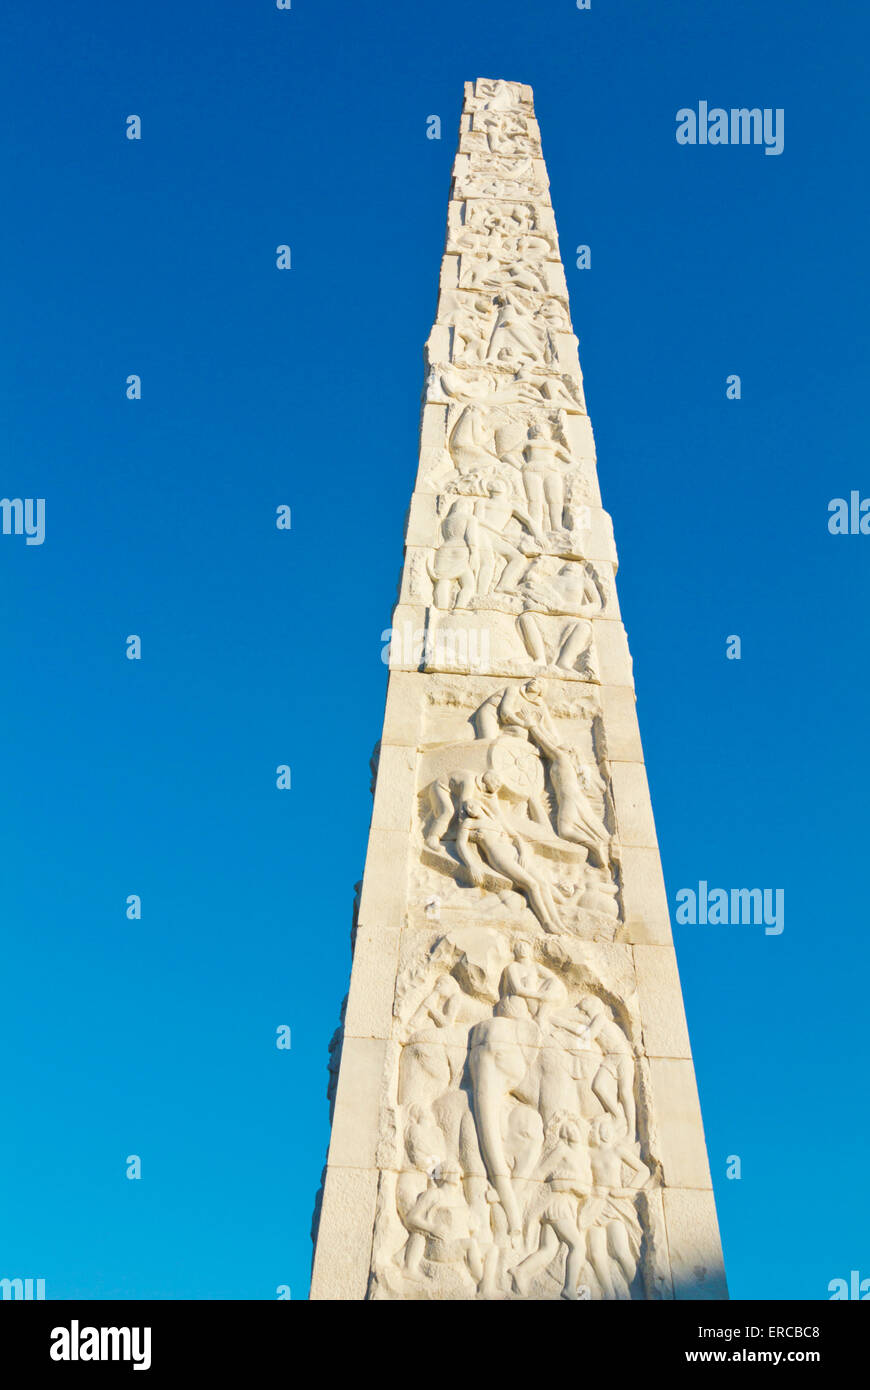 Modern era obelisk (1959), Piazza Guglielmo Marconi, EUR government and financial district, Rome, Italy - Stock Image